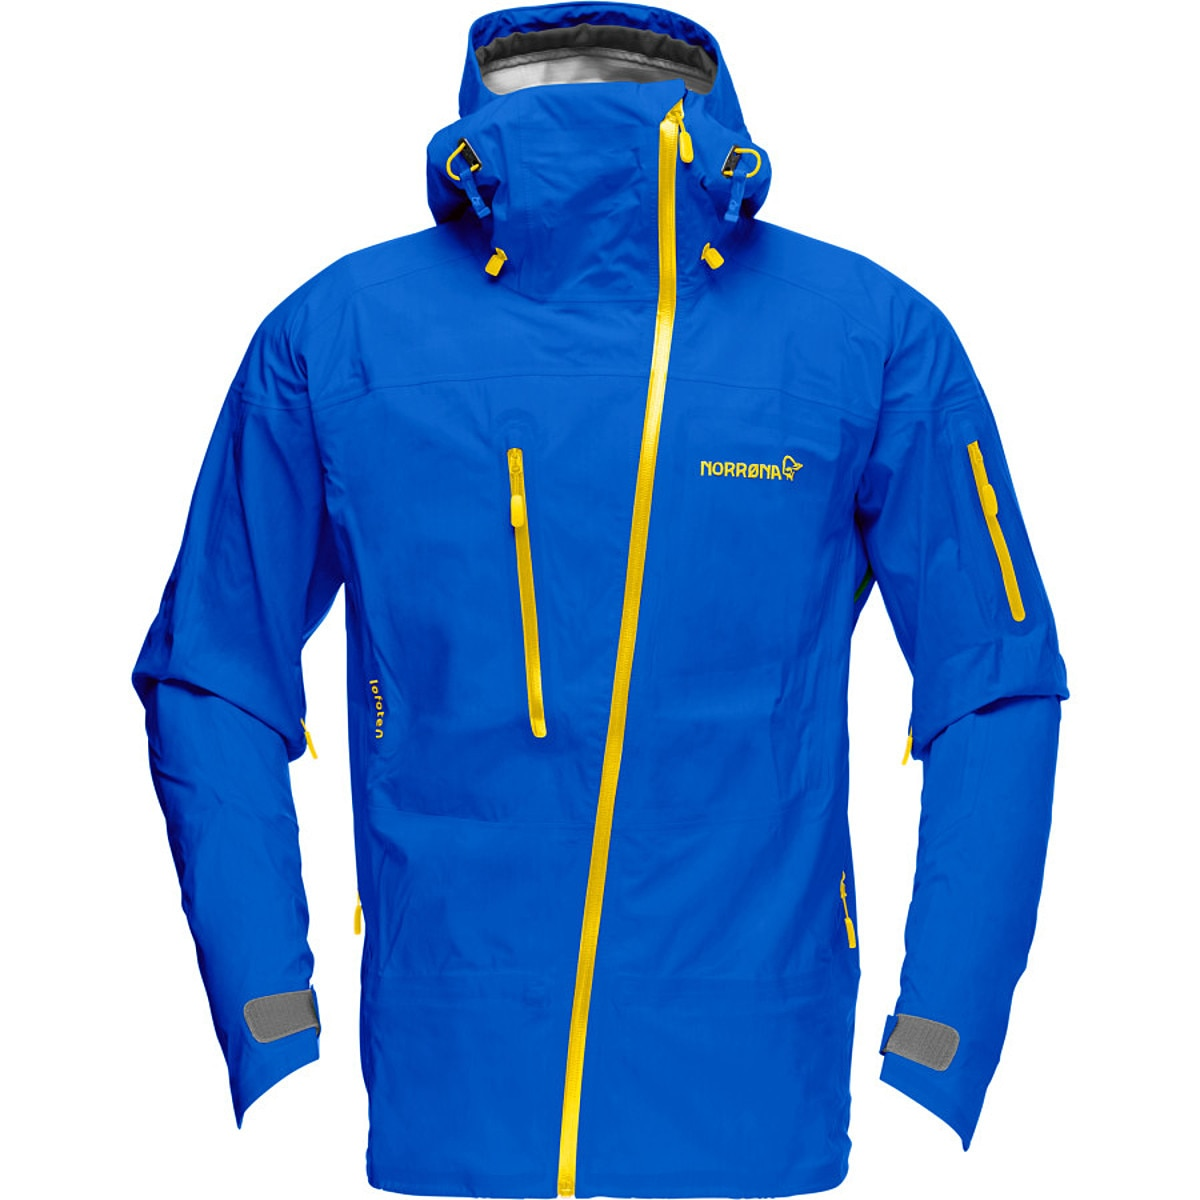 photo: Norrona Men's Lofoten Gore-Tex Active Shell Jacket